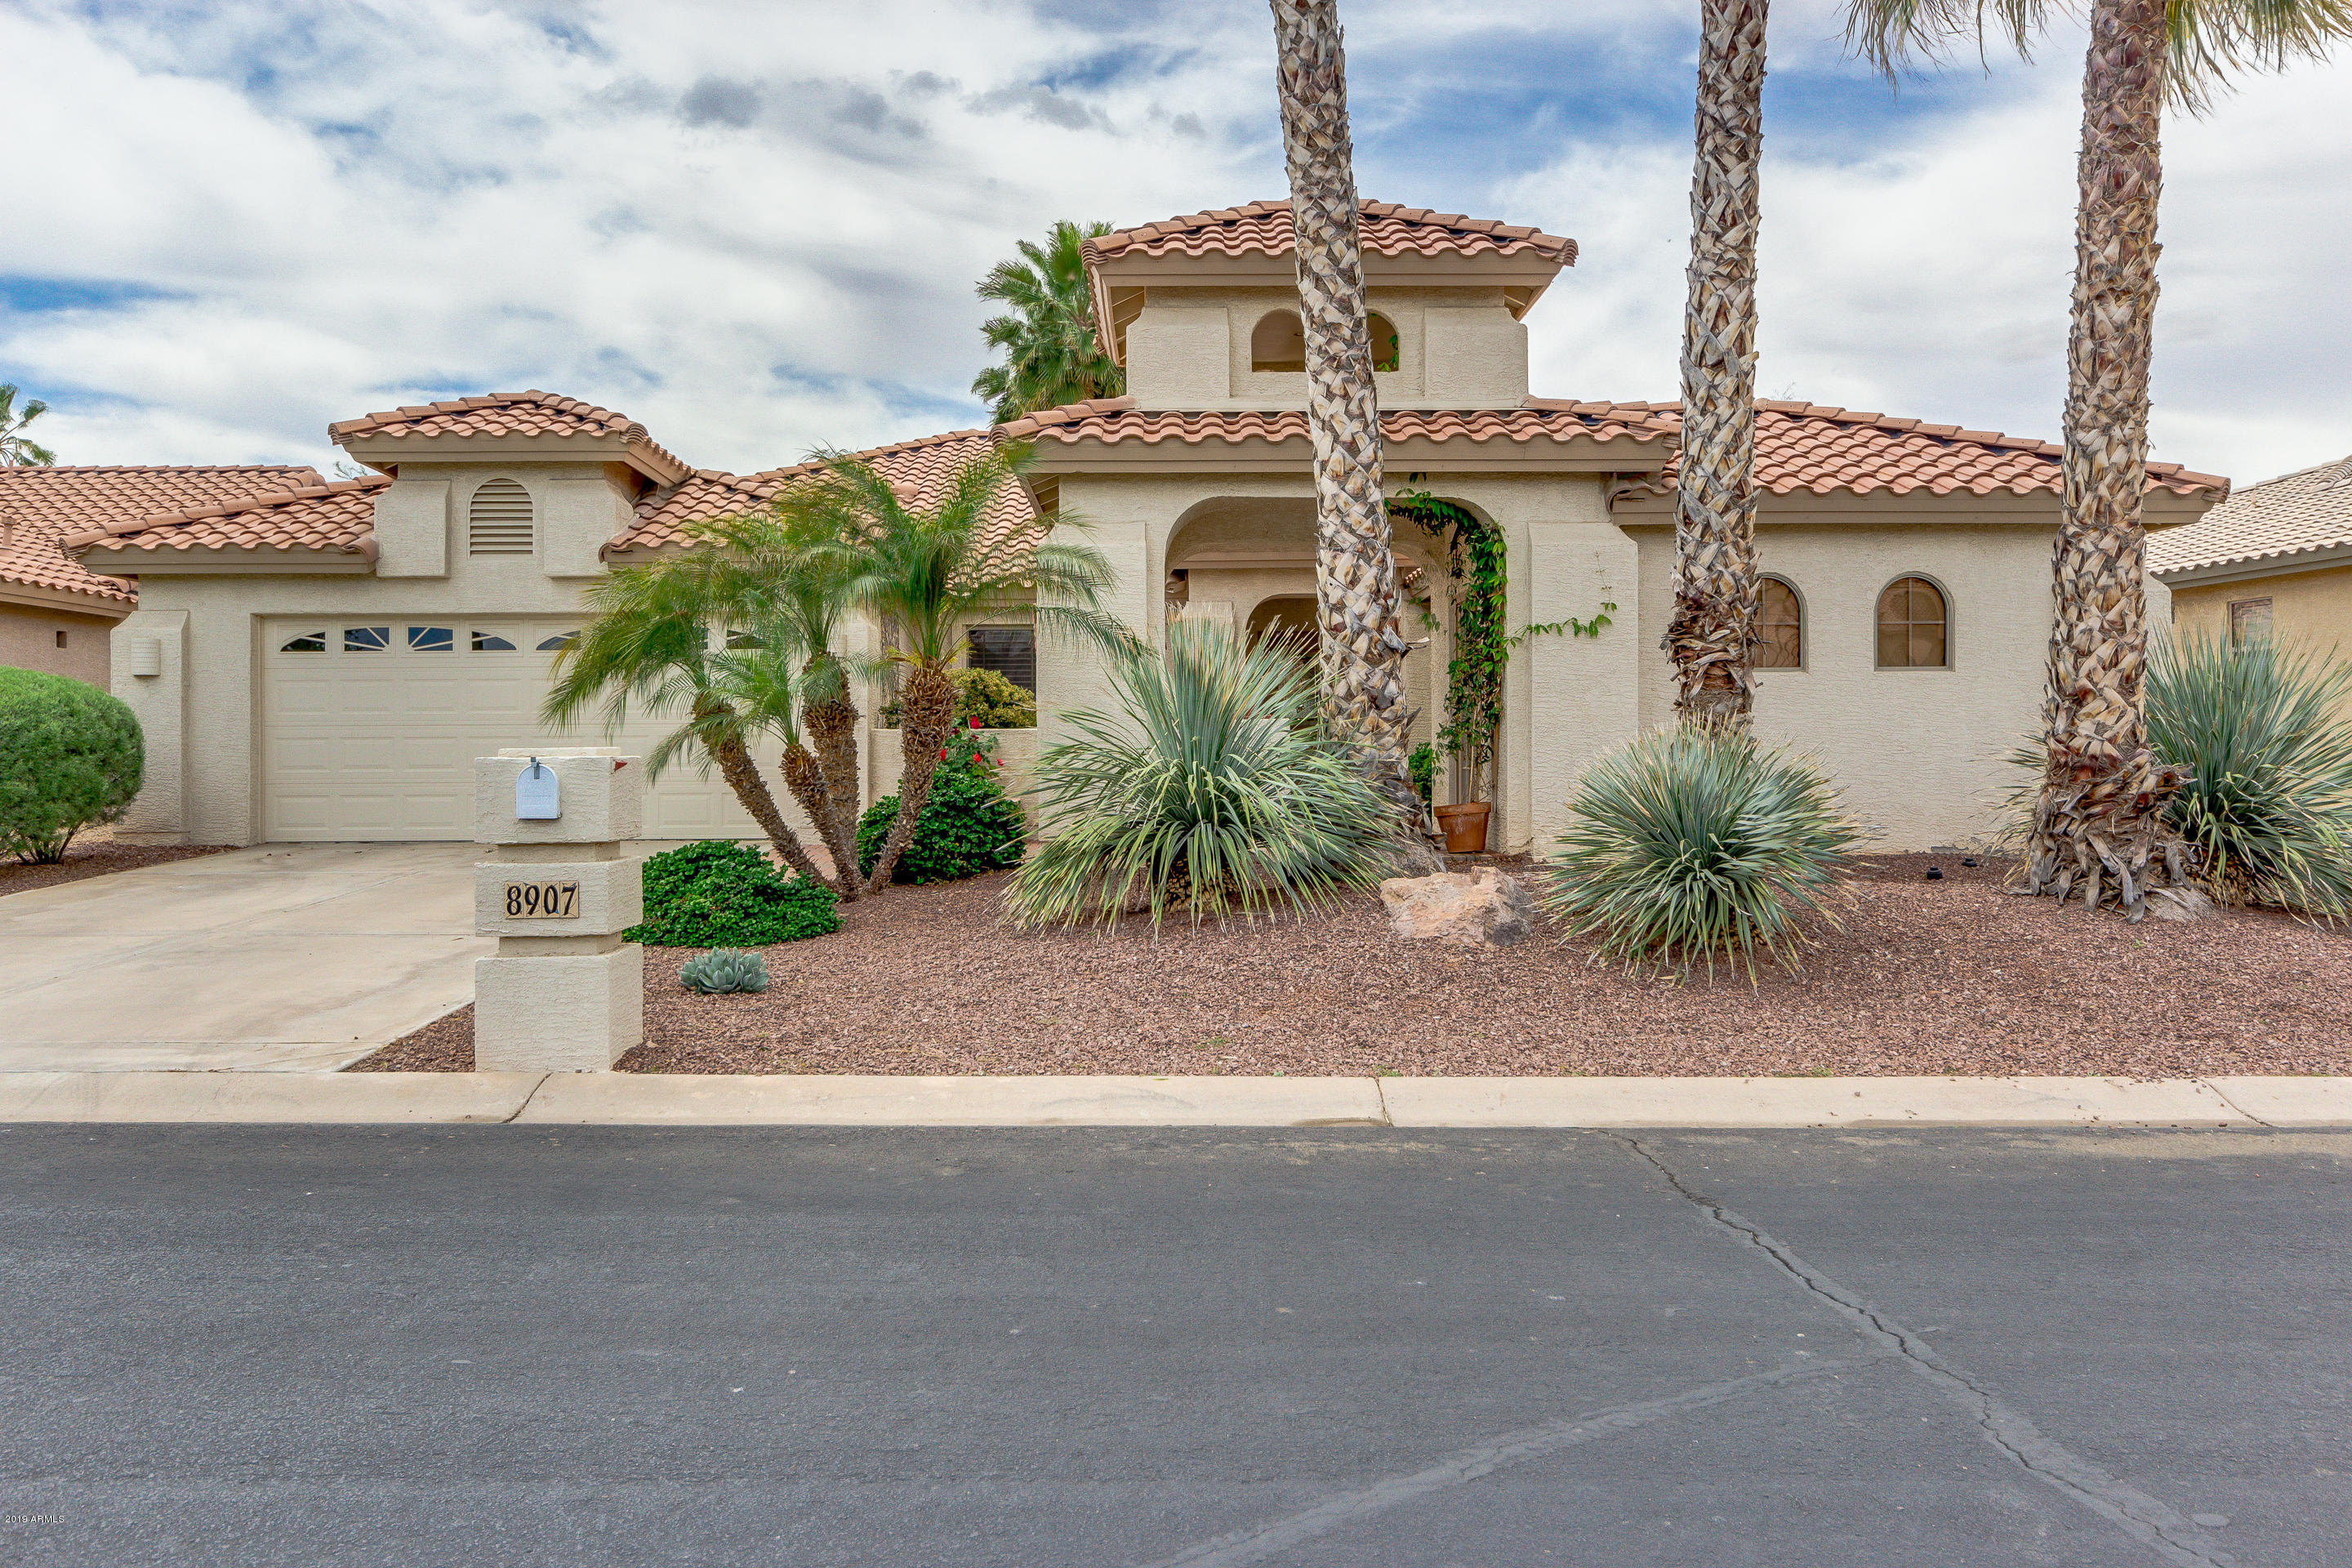 Photo for 8907 E Sunridge Drive, Sun Lakes, AZ 85248 (MLS # 5912832)